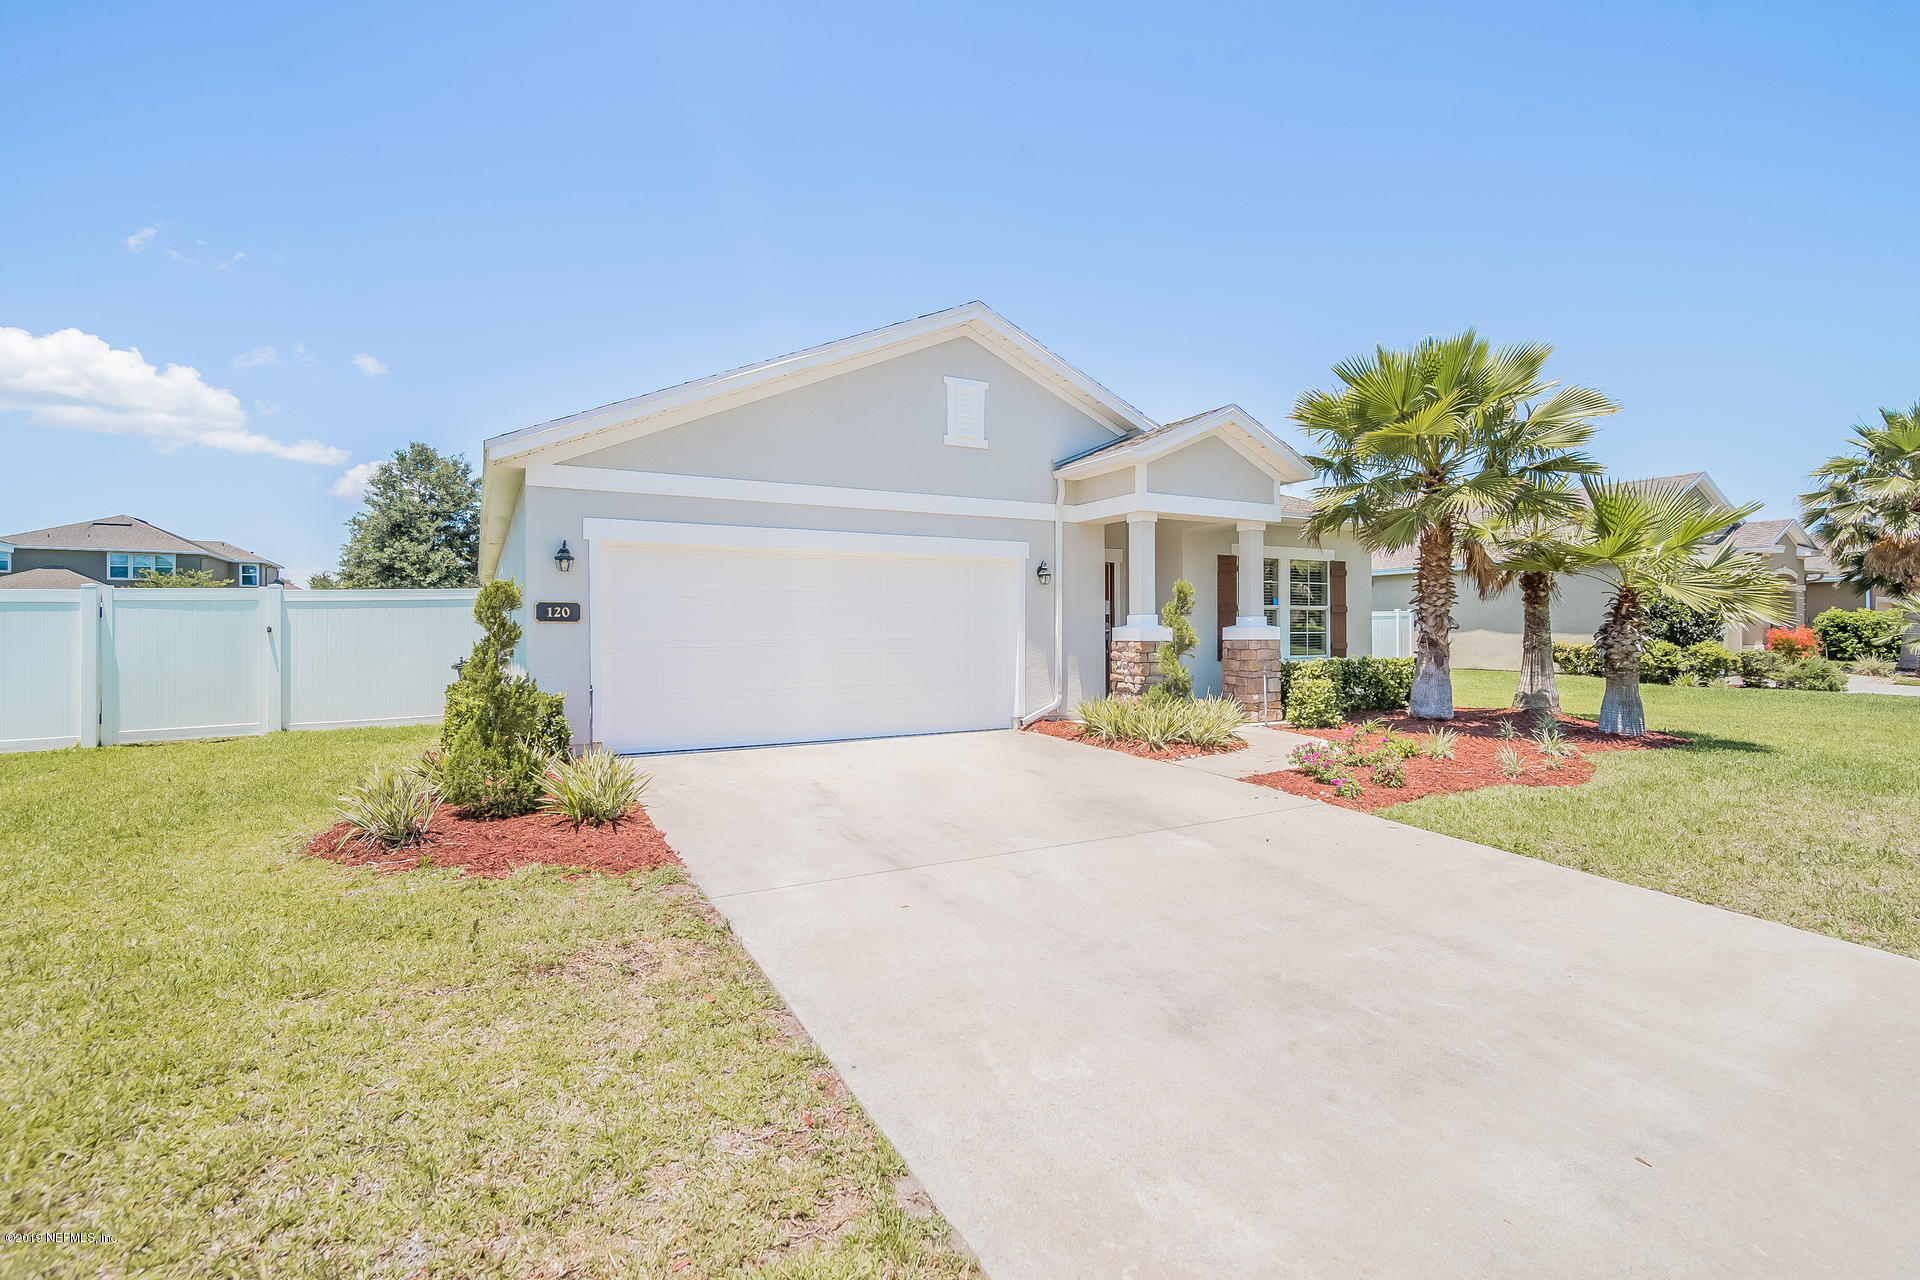 120 Corey Cay Ave St Augustine, FL 32092